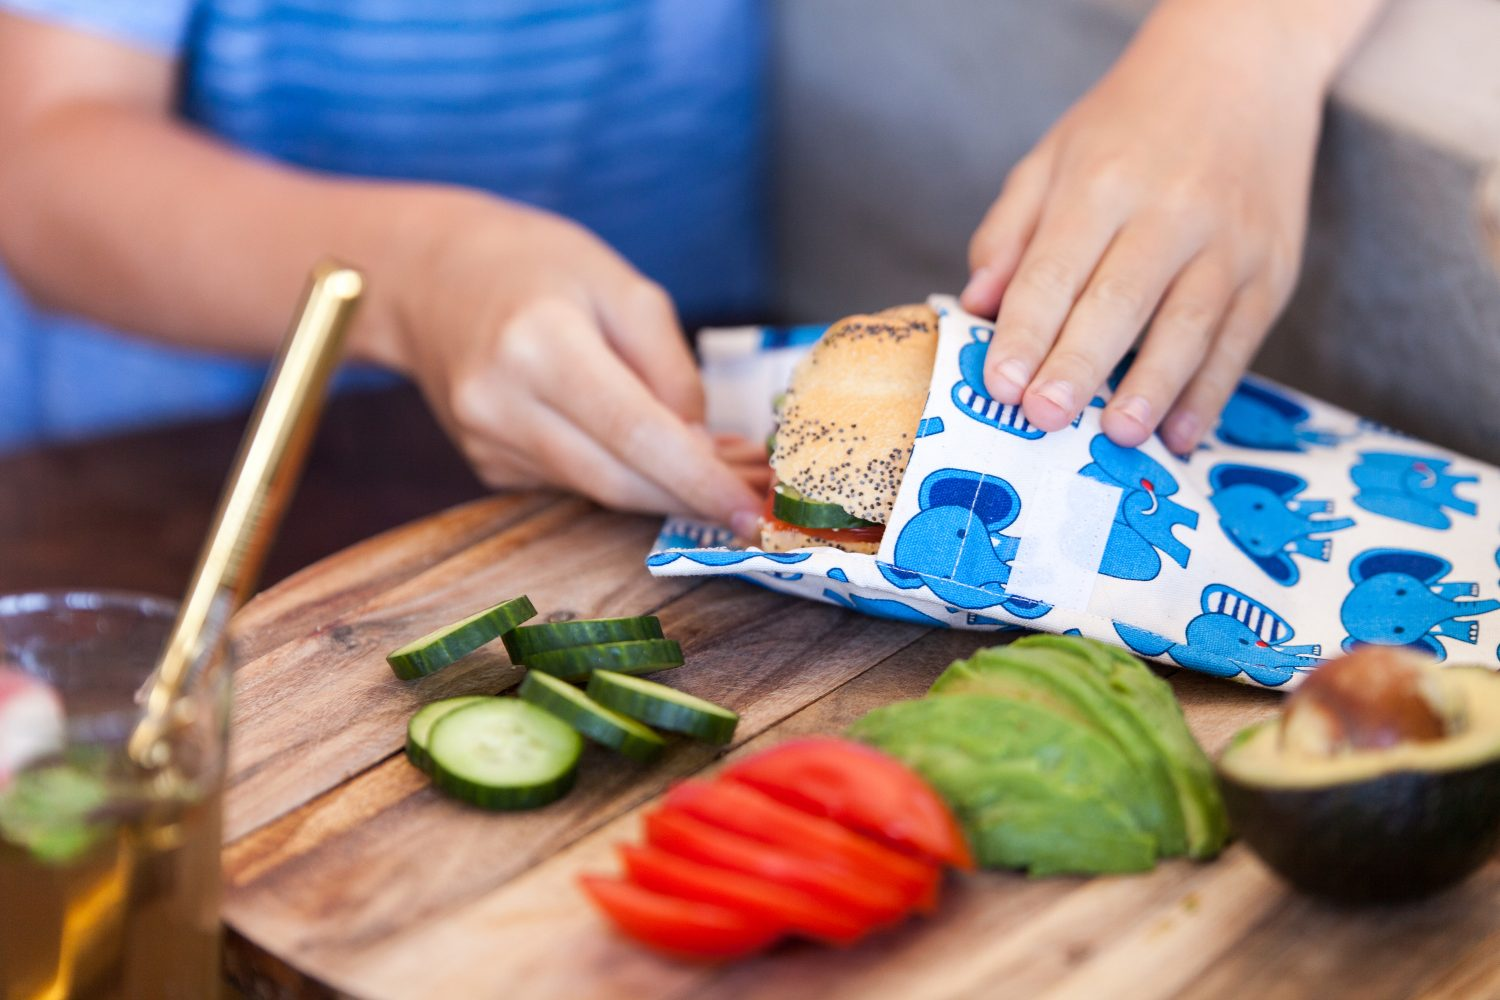 Nowhere & Everywhere Zero Waste Kits 100% Hemp Linen Recycled Food Pockets Sandwich Pouches Kitchen Plastic Free Products